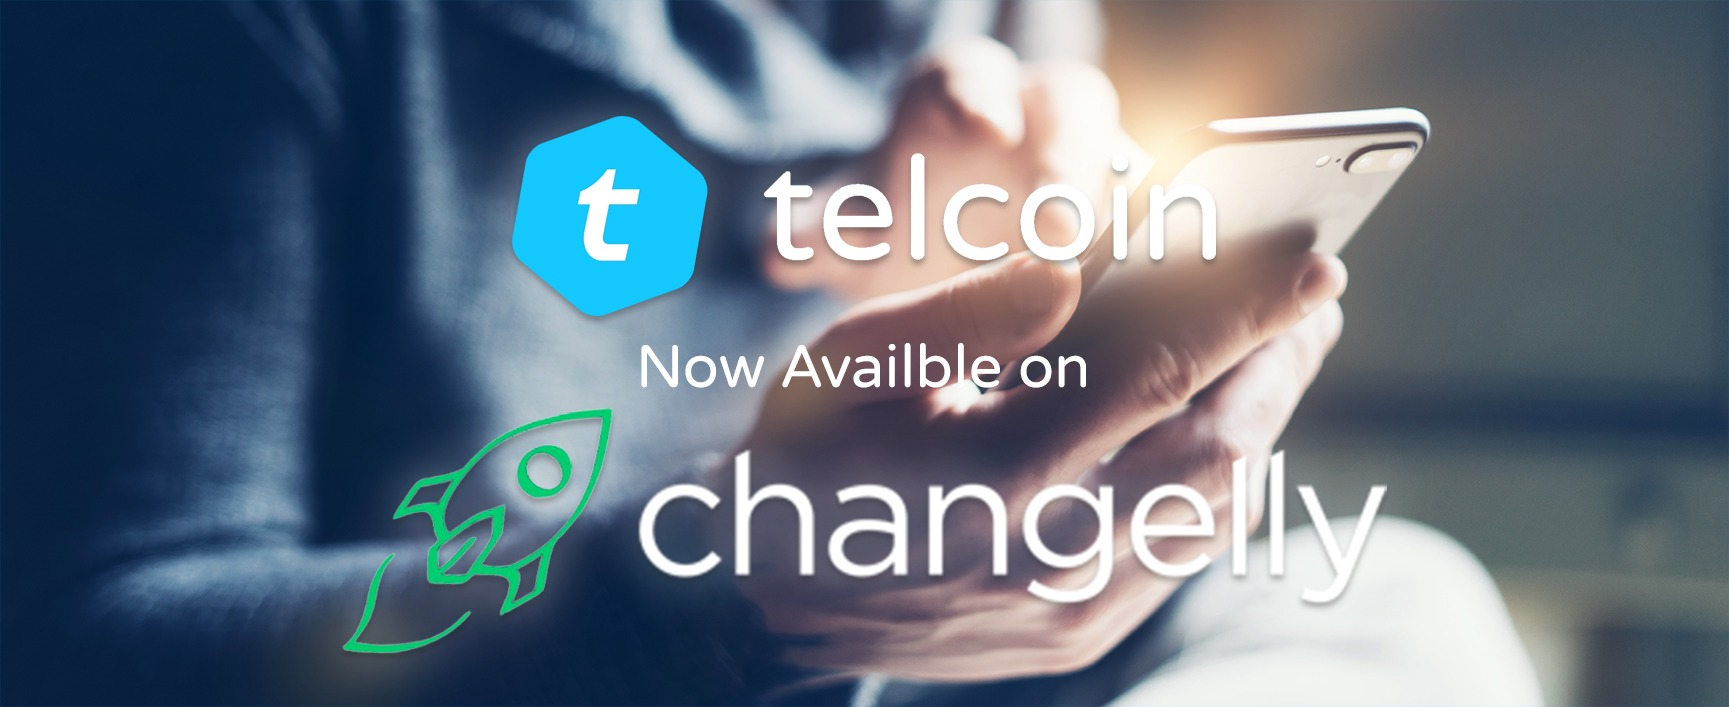 Telcoin available on Changelly